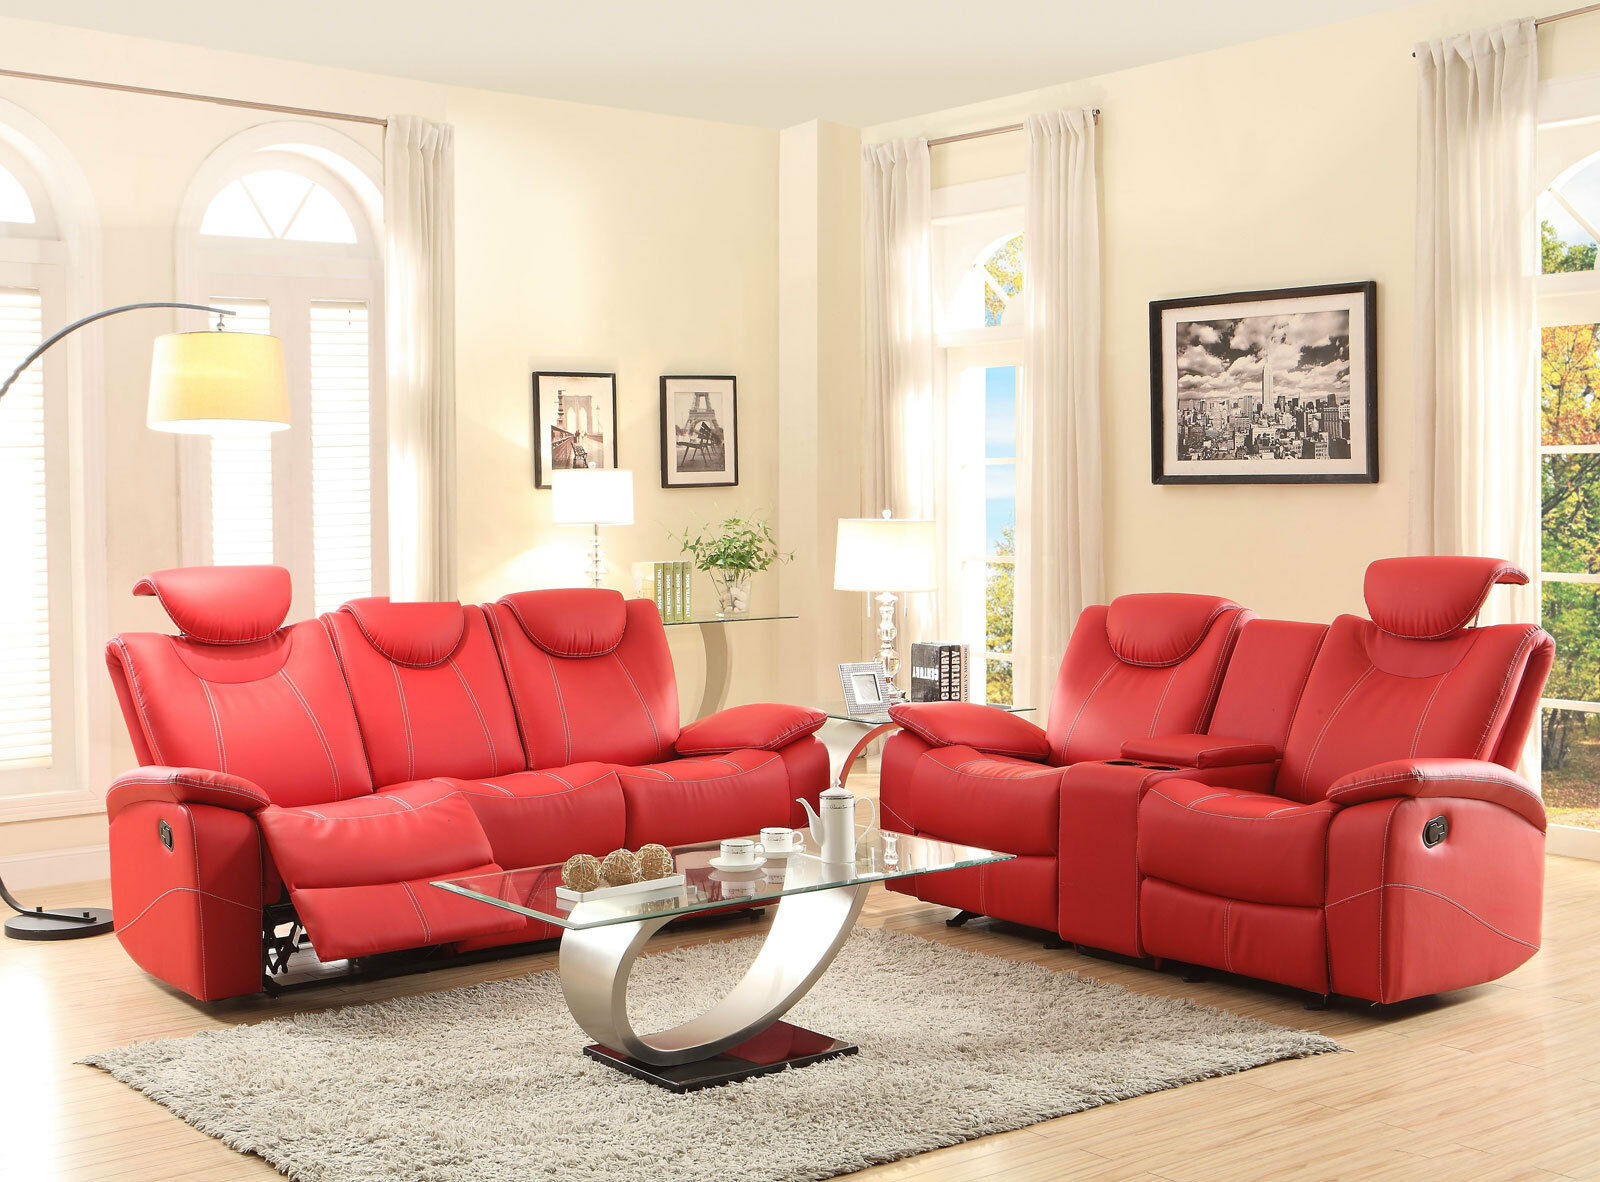 Modern Living Room Couch Set Red Bonded Leather Reclining